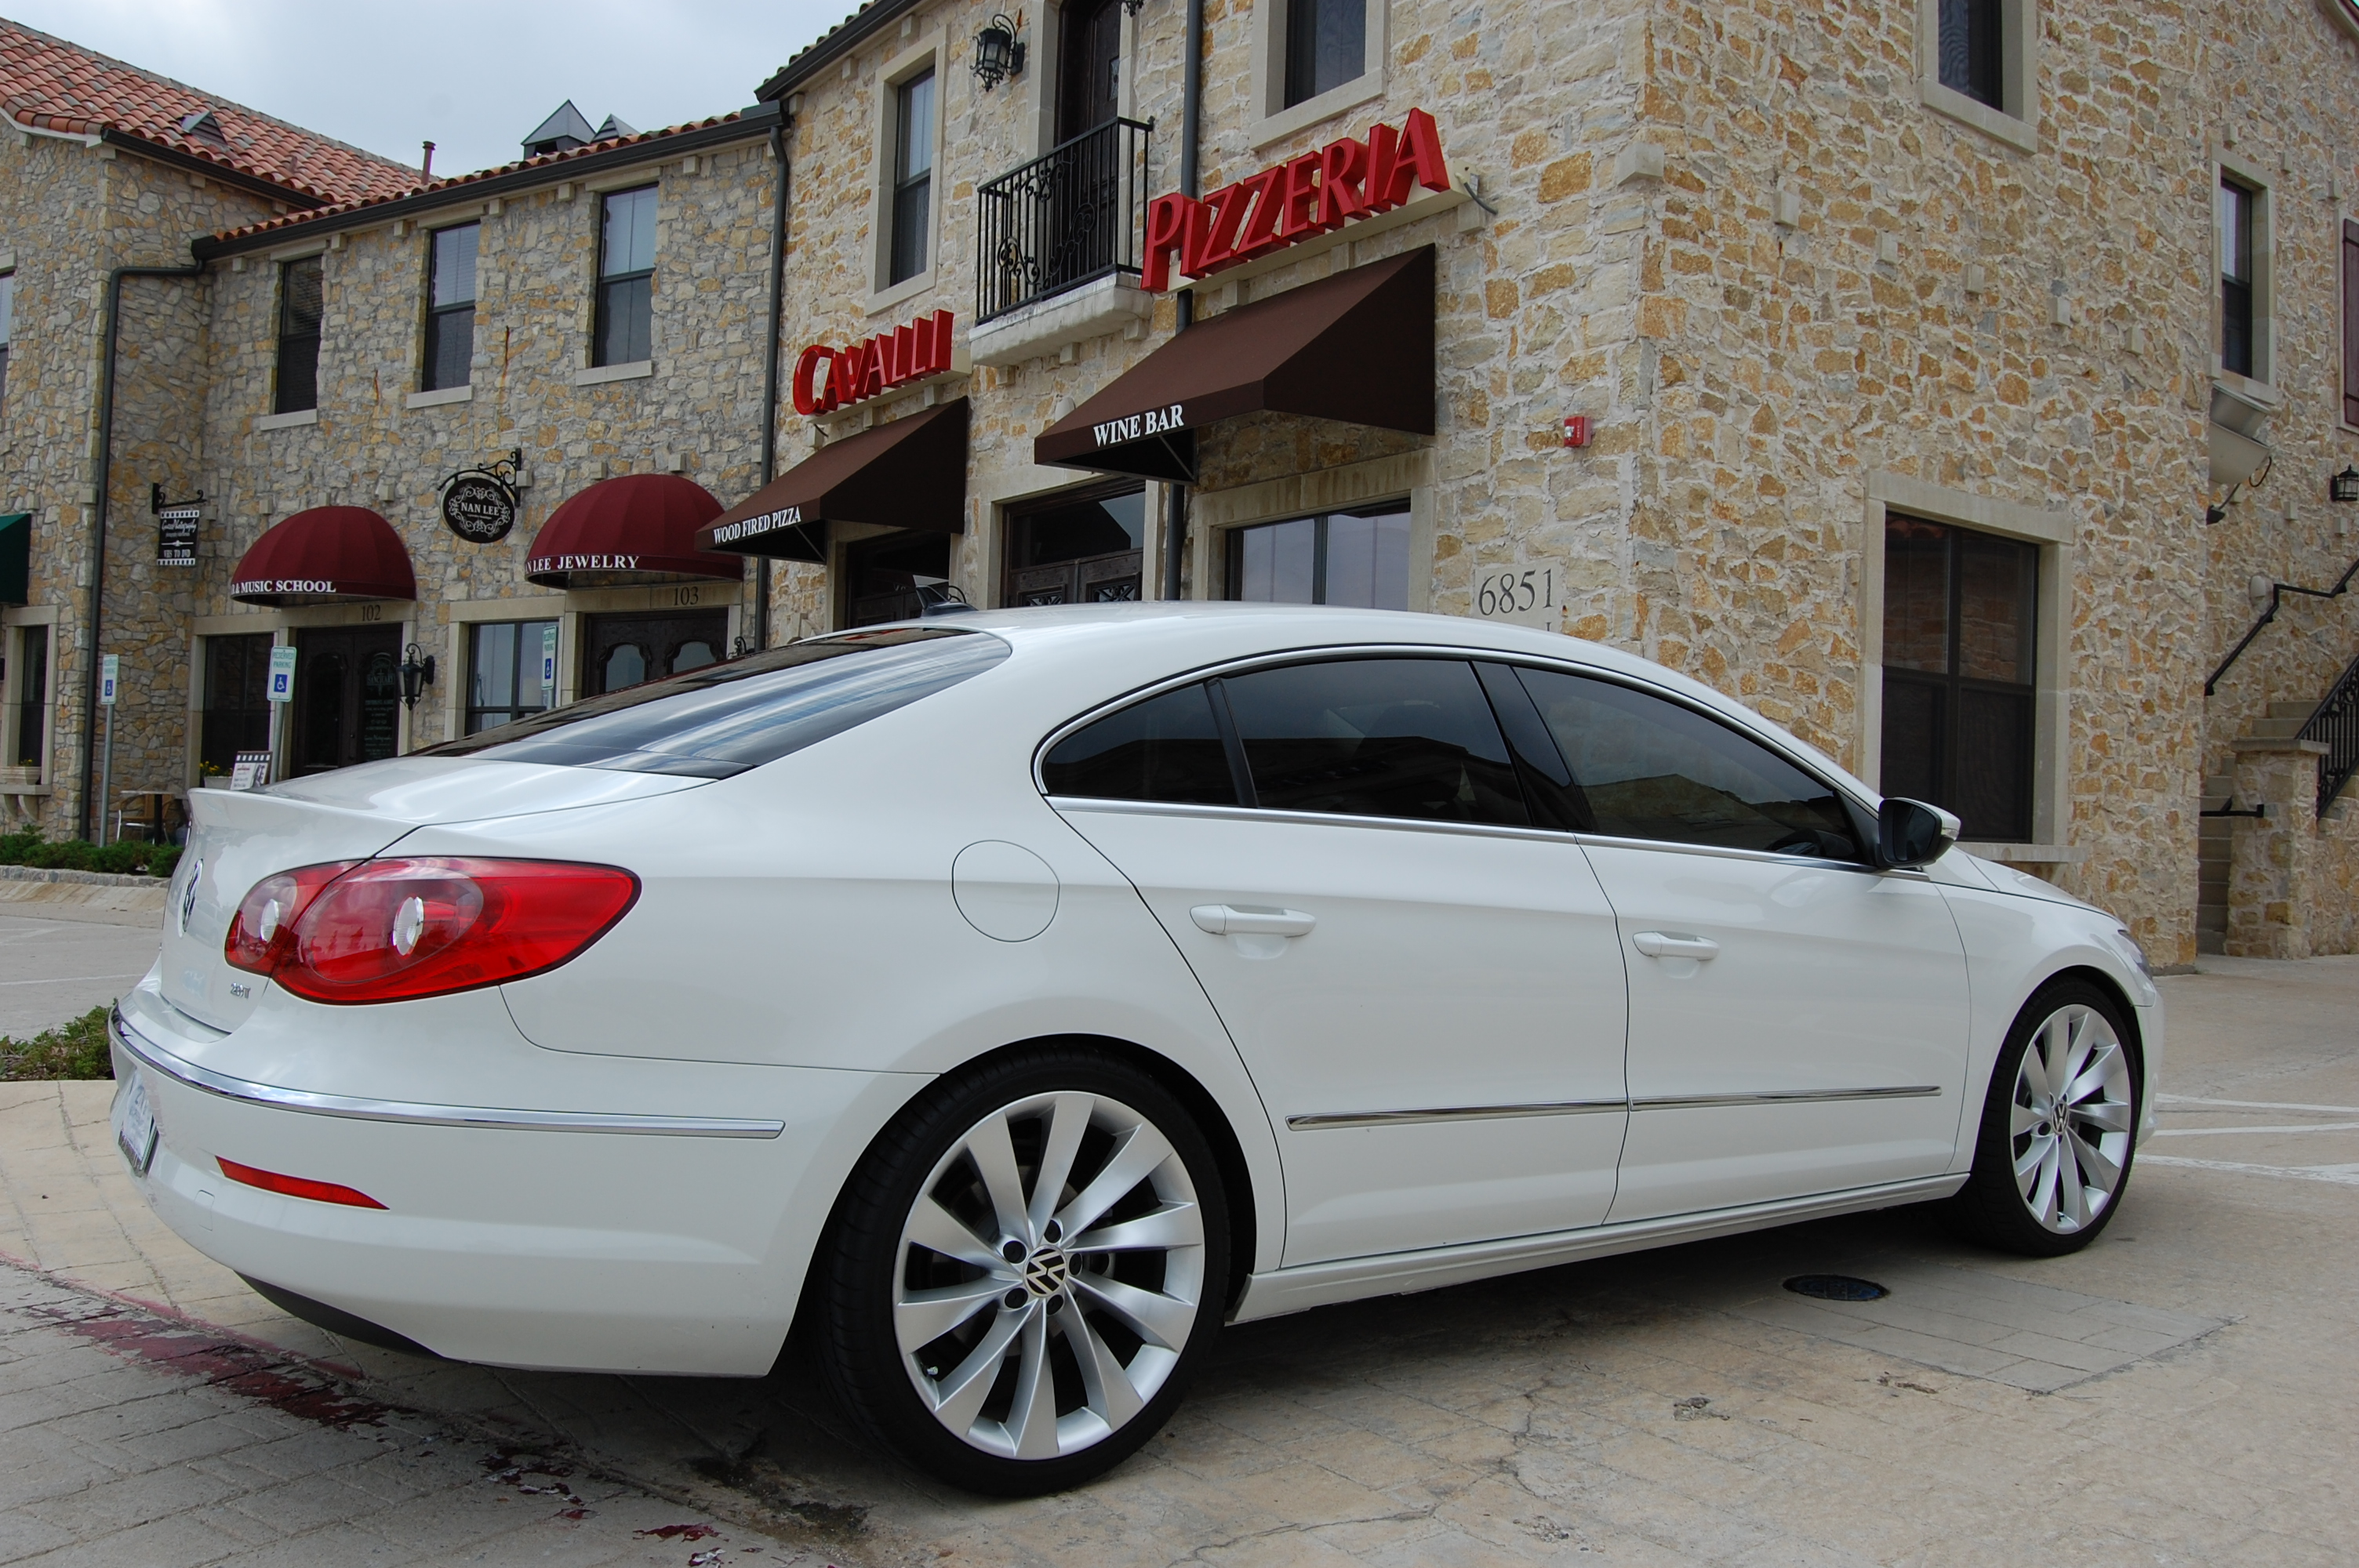 Top 10 most affordable luxury cars autospies auto news - So After Much Debate And Countless Test Drives I Took The Plunge My Final Choice For Was A 2010 Volkswagen Cc With Only 16 000 Miles